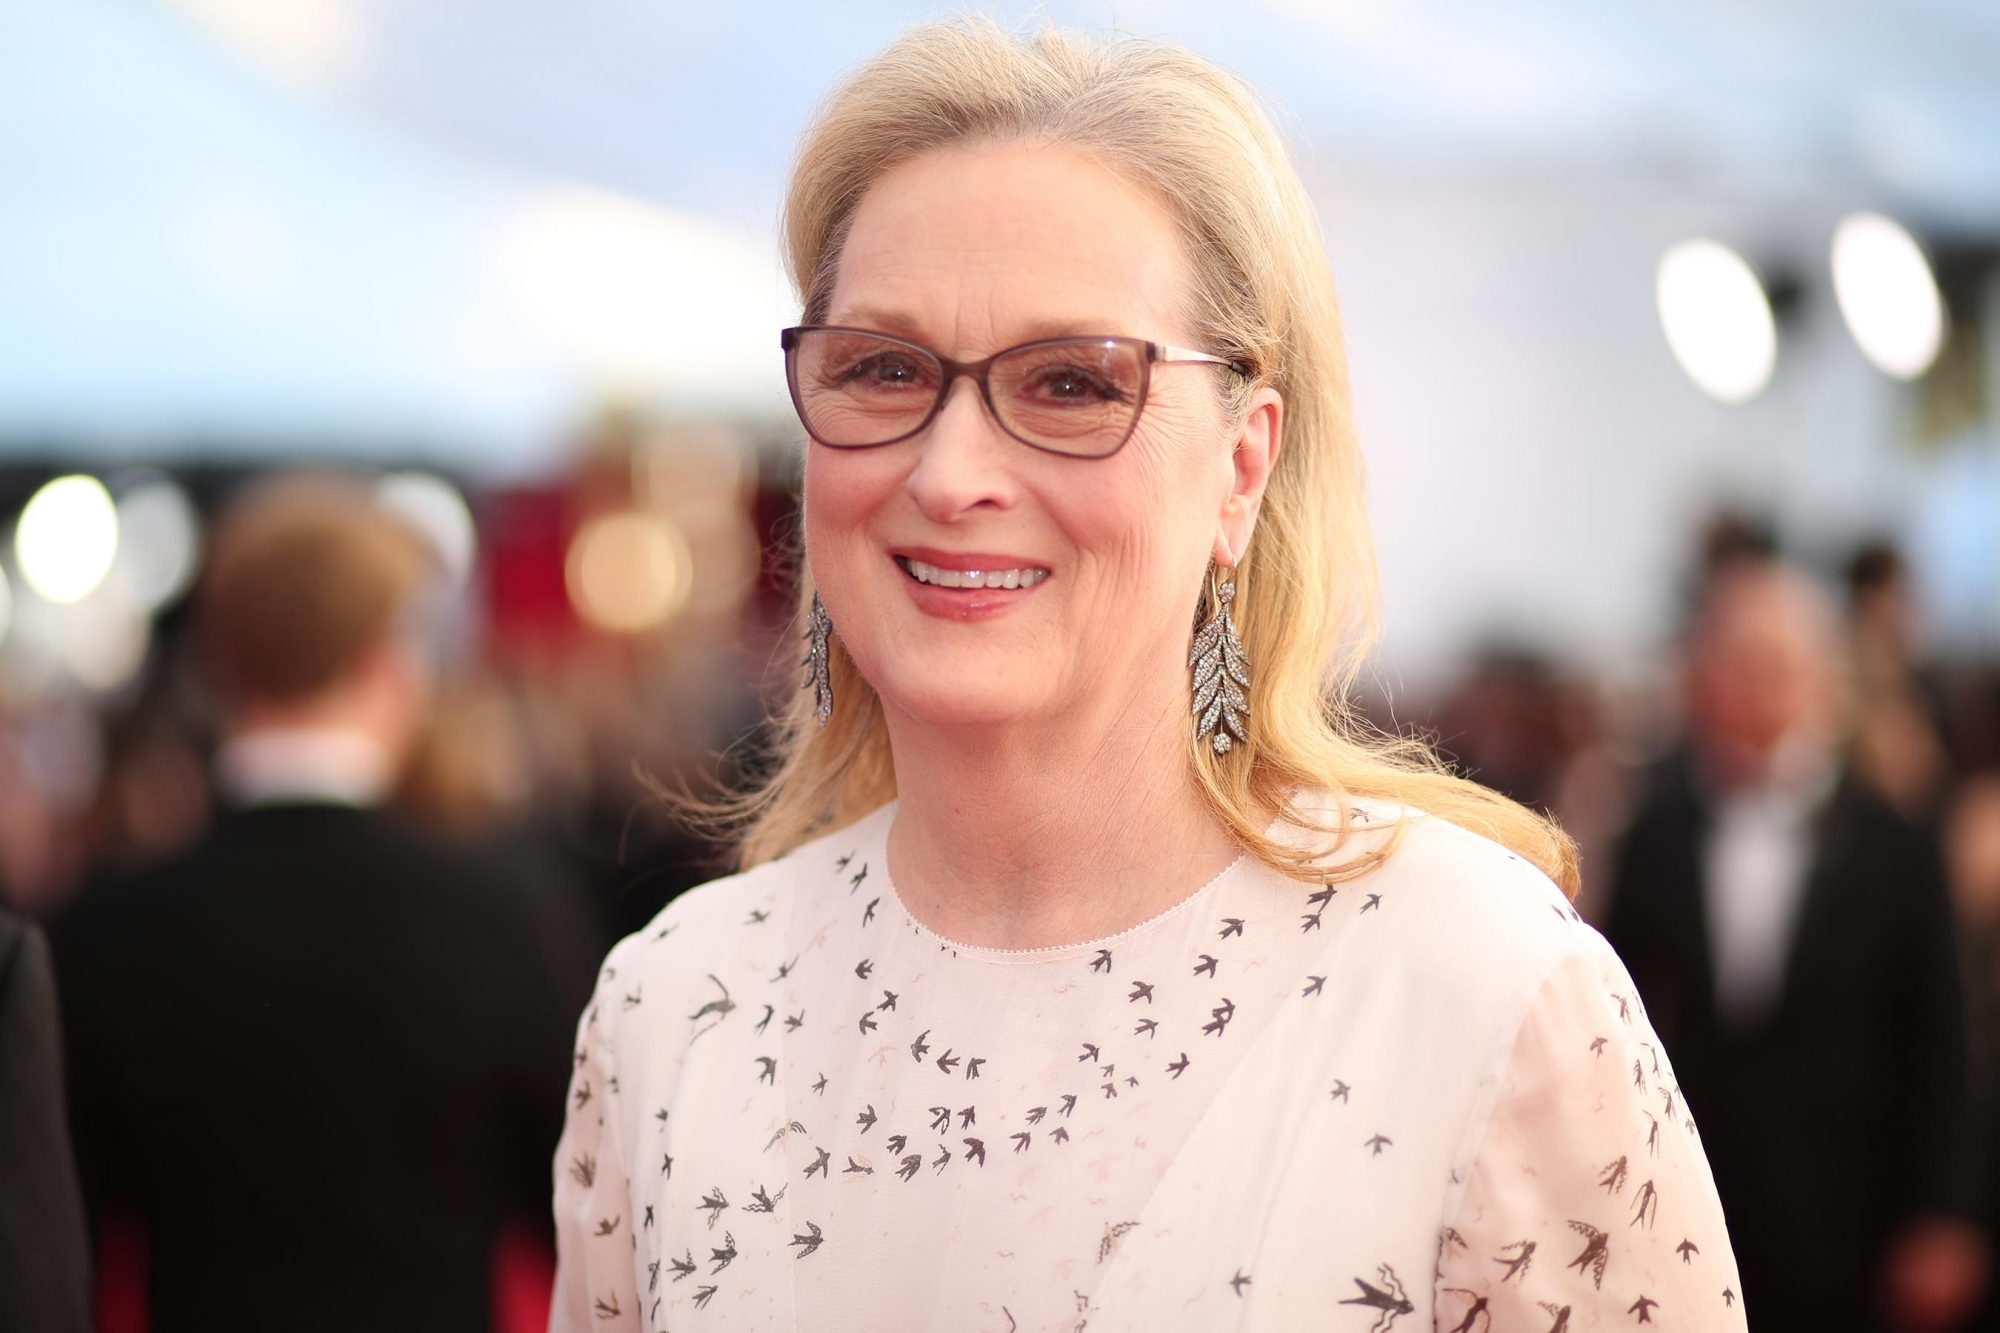 Meryl Streep, TV Star?